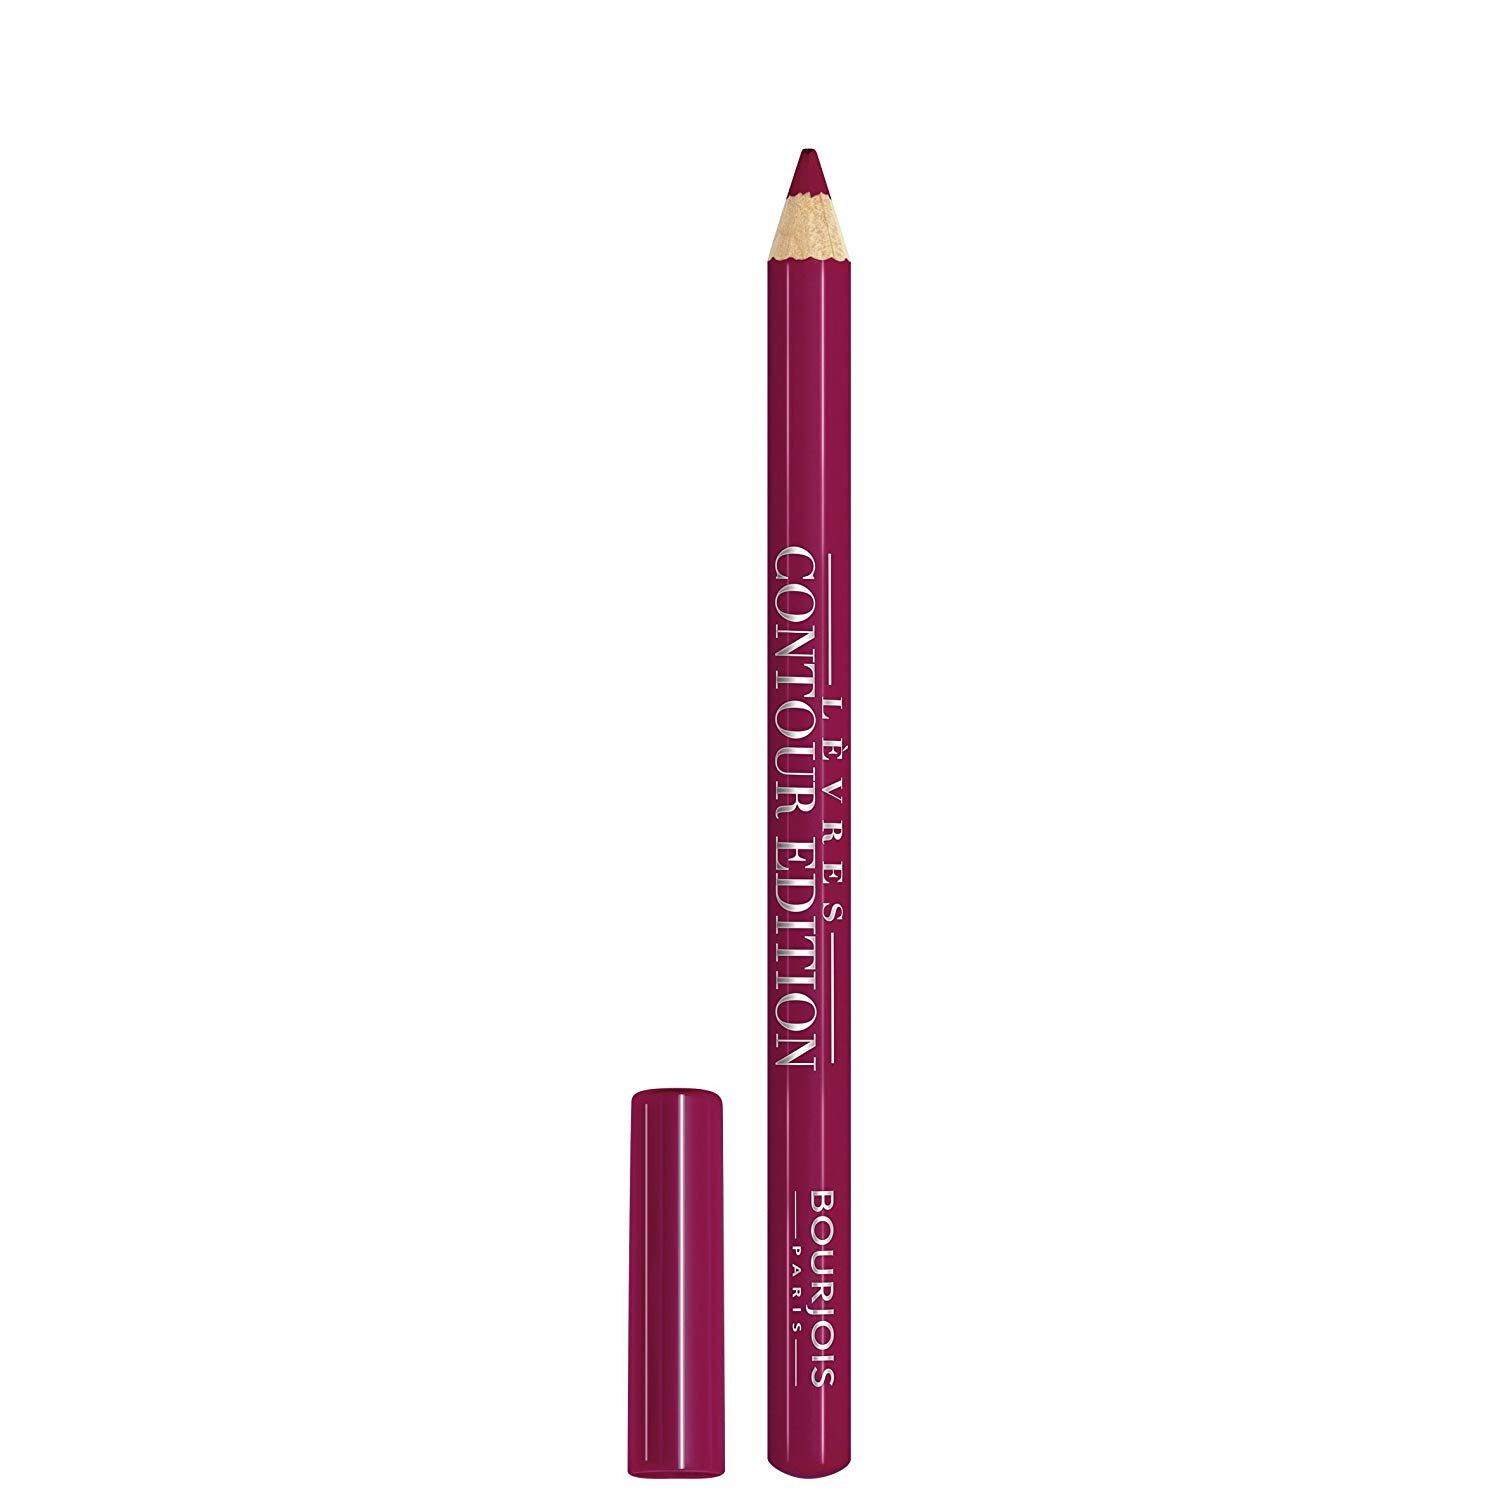 BOURJOIS COUNTOUR EDITION LEVRES PERFILADOR DE LABIOS 005 BERRY MUCH